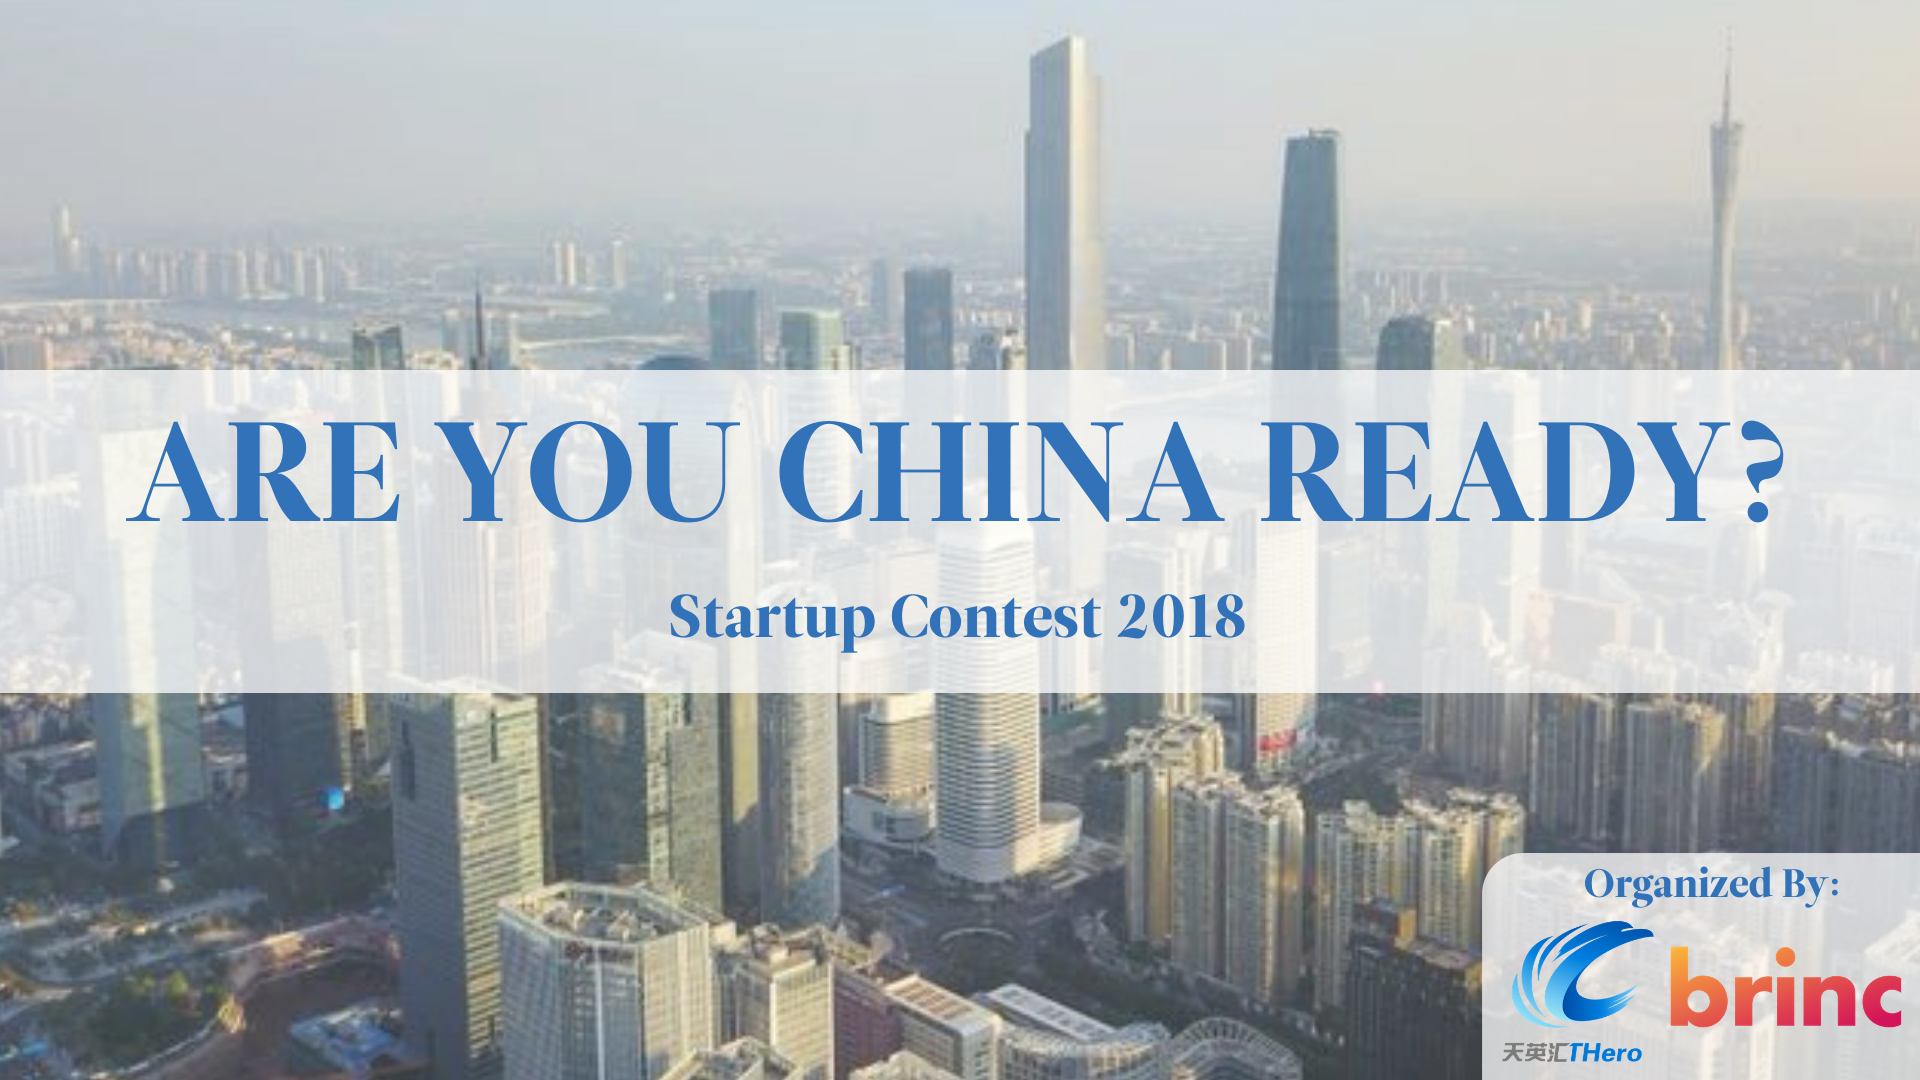 THero Brinc Are You China Ready Startup Contest 2018.png